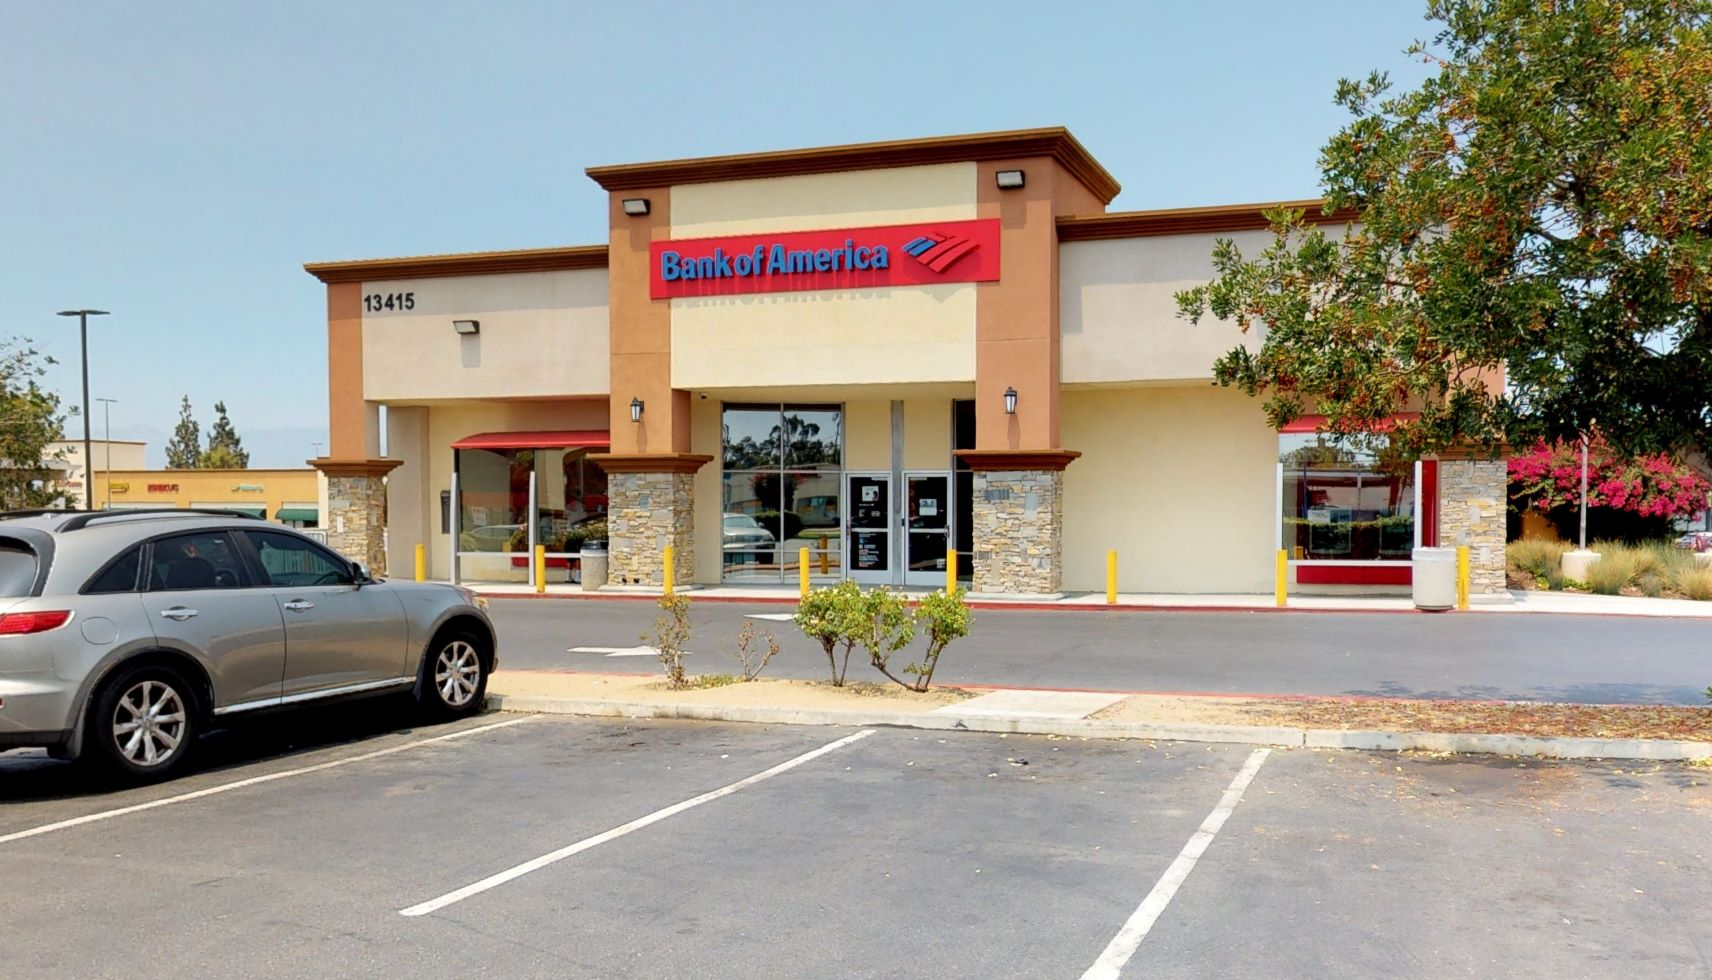 Bank of America financial center with walk-up ATM | 13415 Telegraph Rd, Whittier, CA 90605